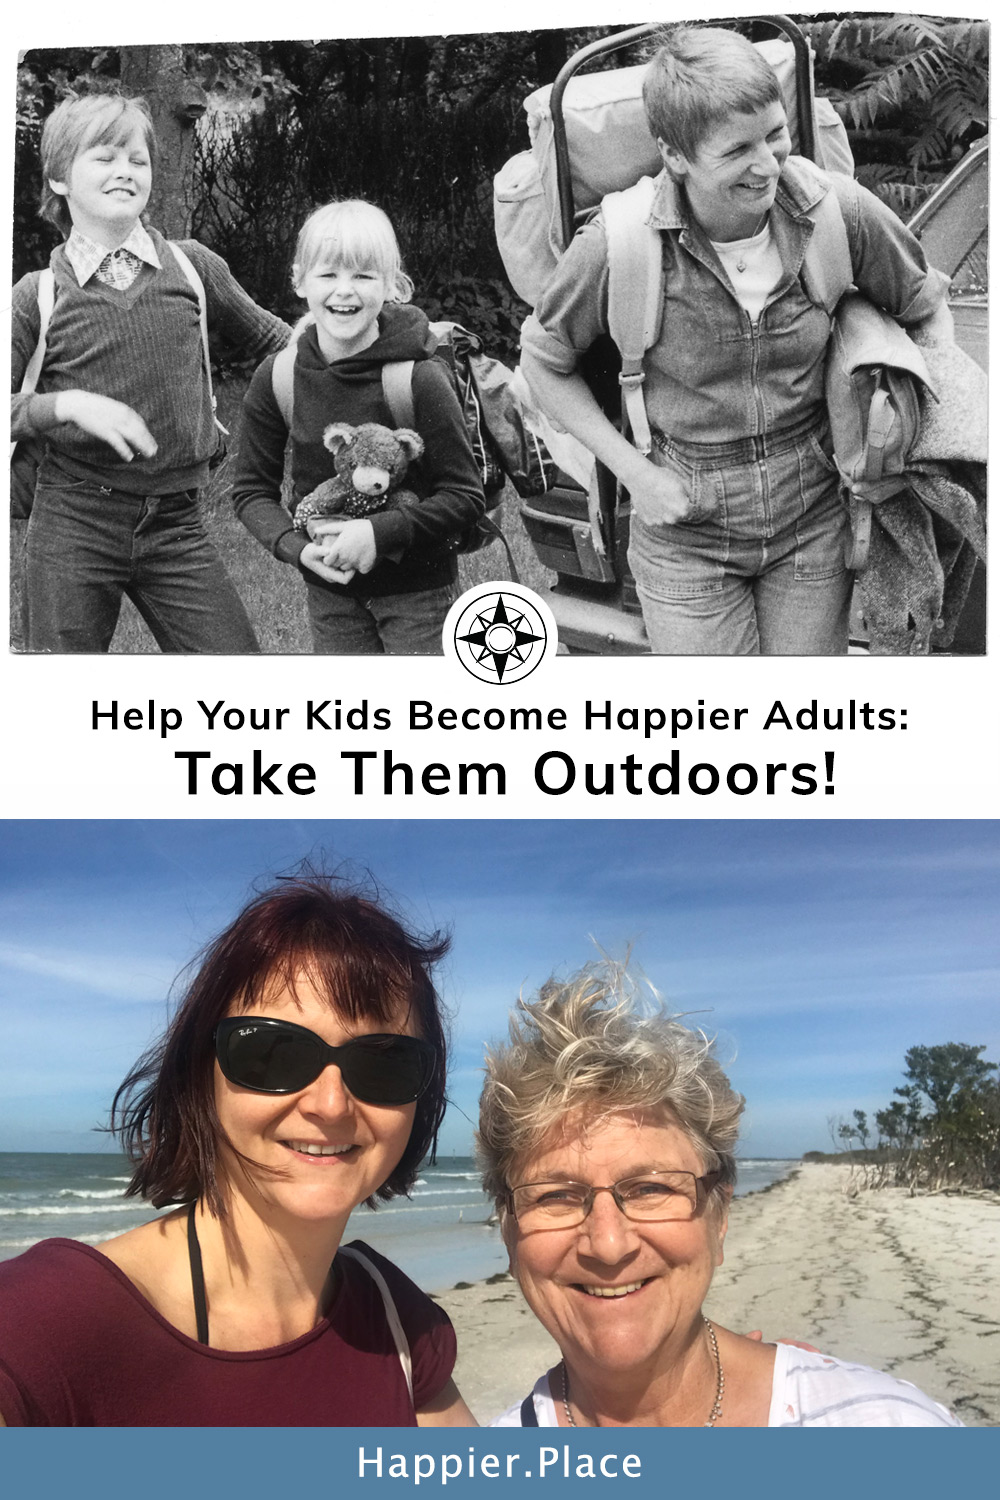 Help your kids become happier adults: take them outdoors! Outdoor fun makes families happier and healthier for generations. 